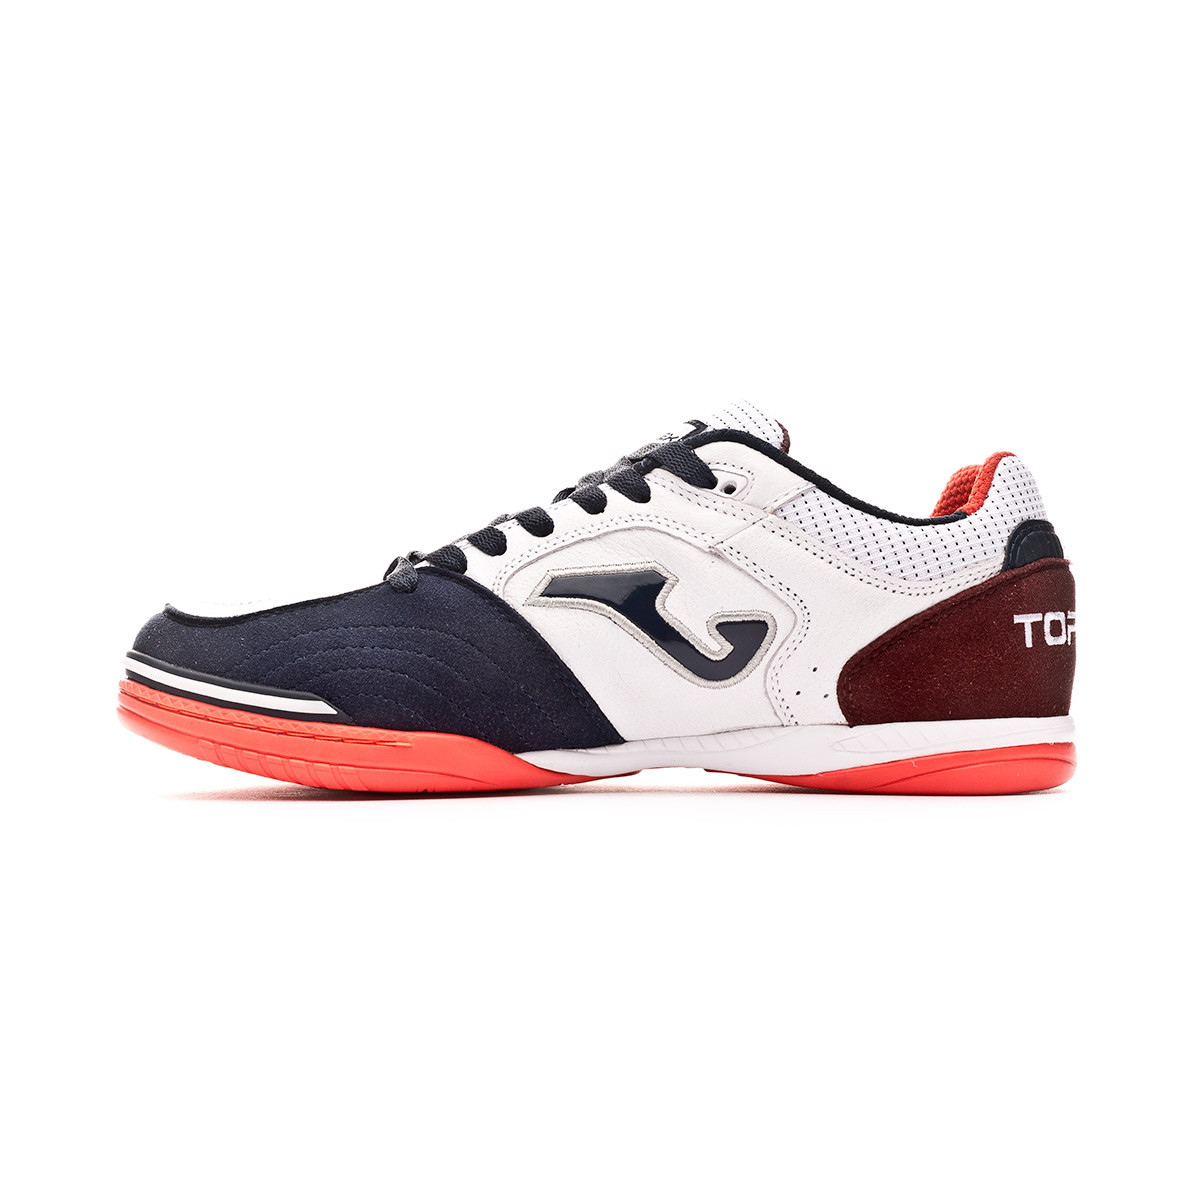 Top Navy White White Zapatilla Top Navy Zapatilla Top Flex Flex Zapatilla Flex thrdCxBsQ